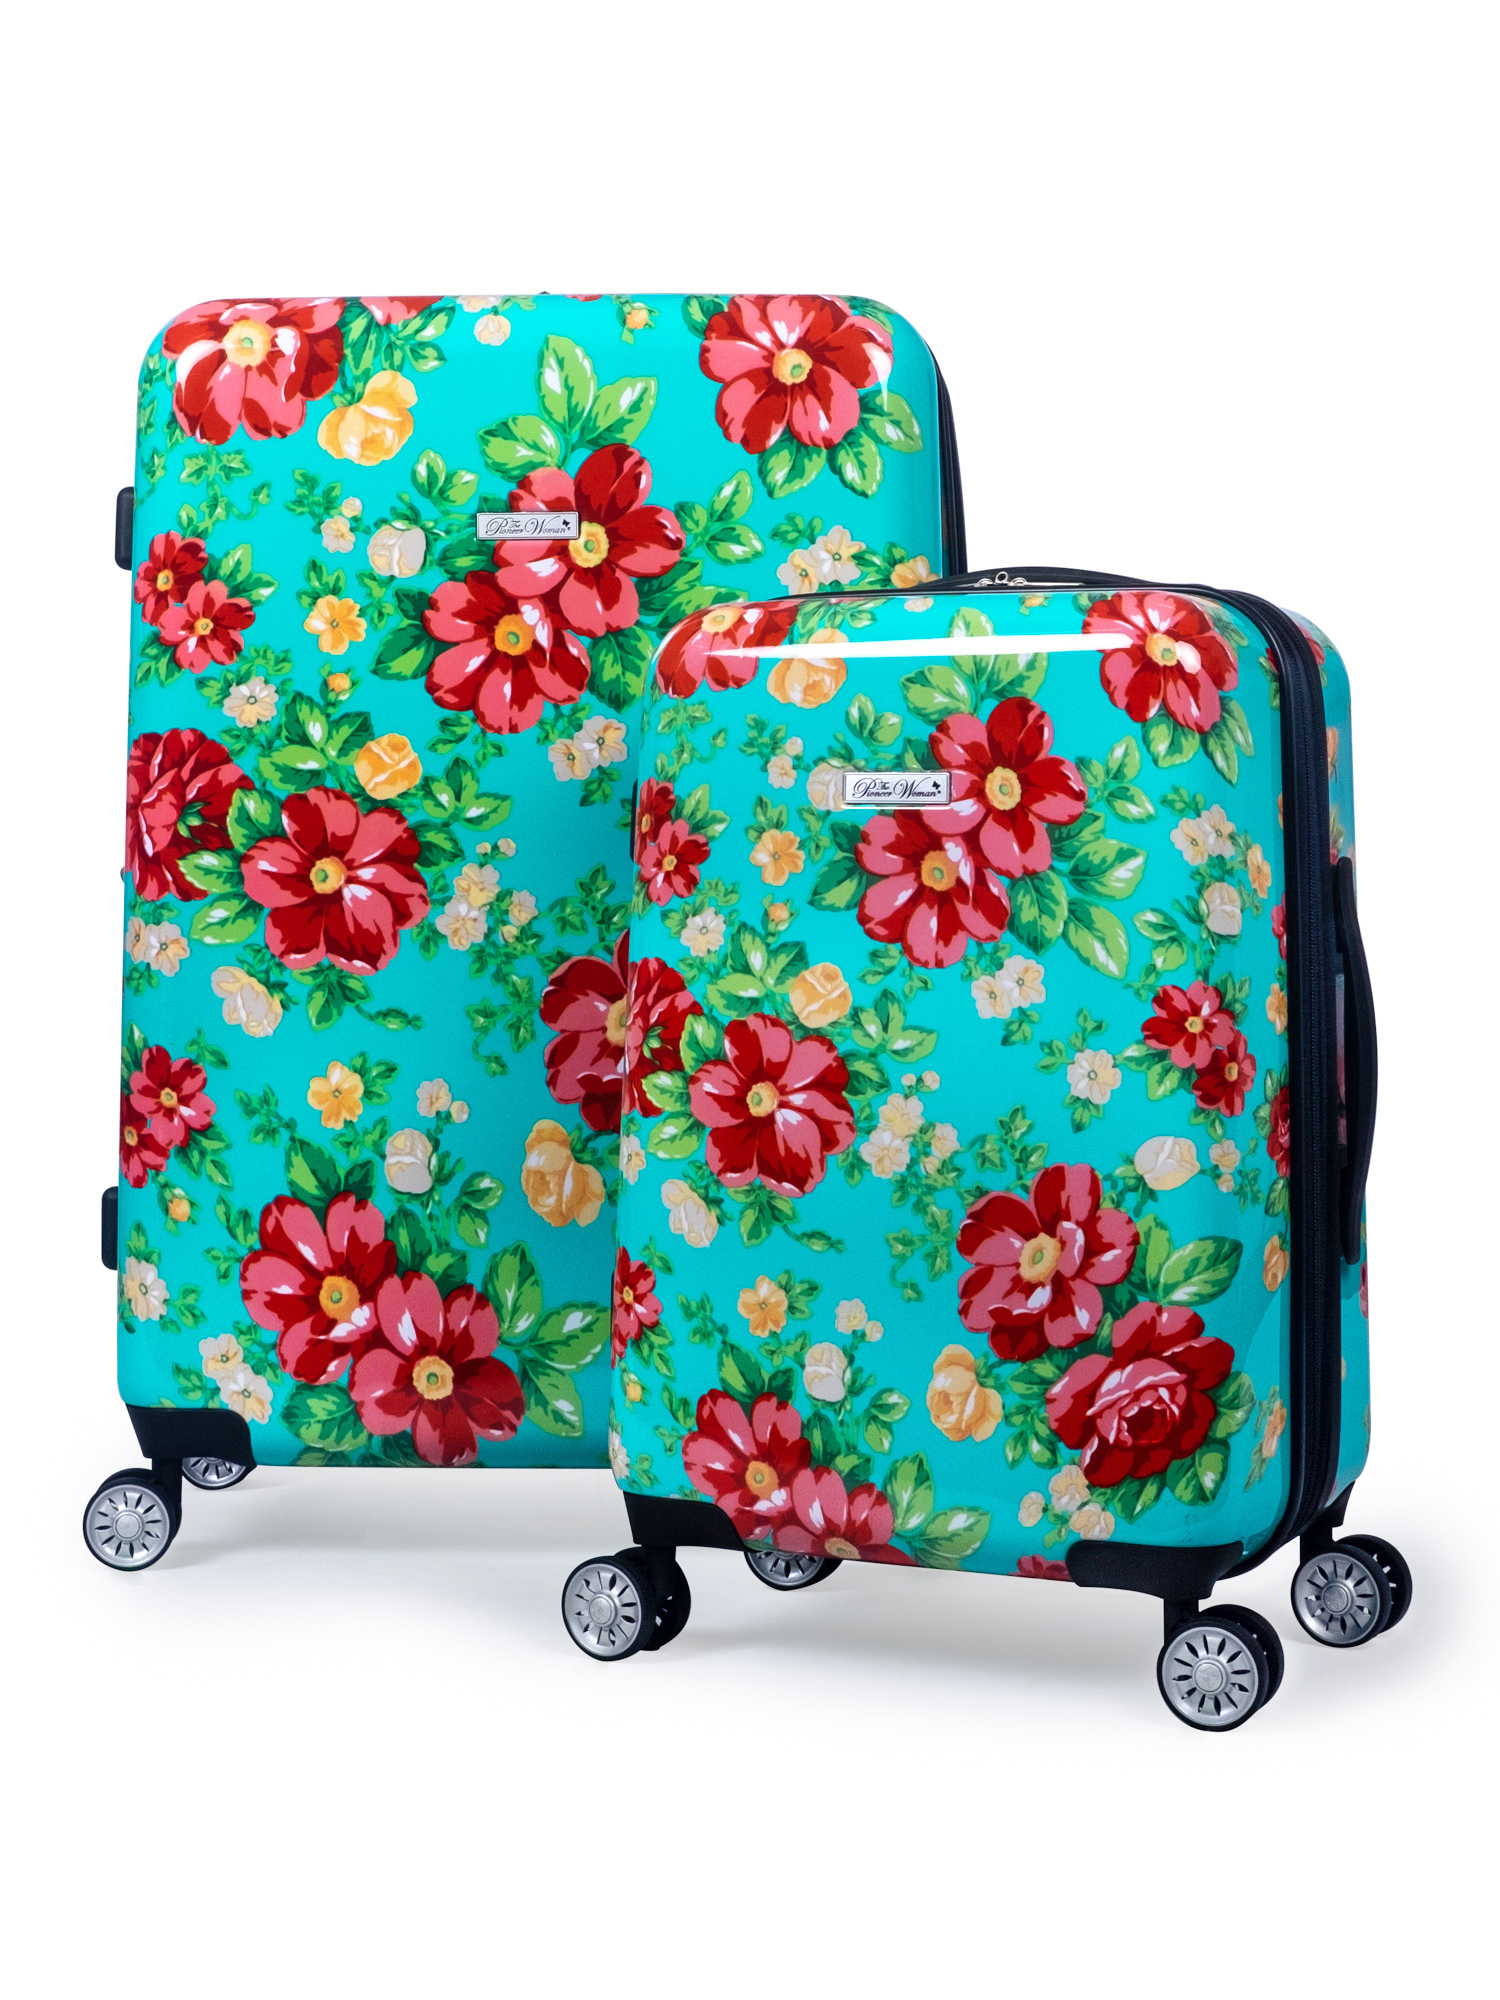 5 Patterns Optional ///& Small Fresh Student Creative Plant Travel Large Capacity Trolley Case YD Luggage Set Trolley Case TSA Custom Code Lock Frosted Pearlescent Surface ABS//PC